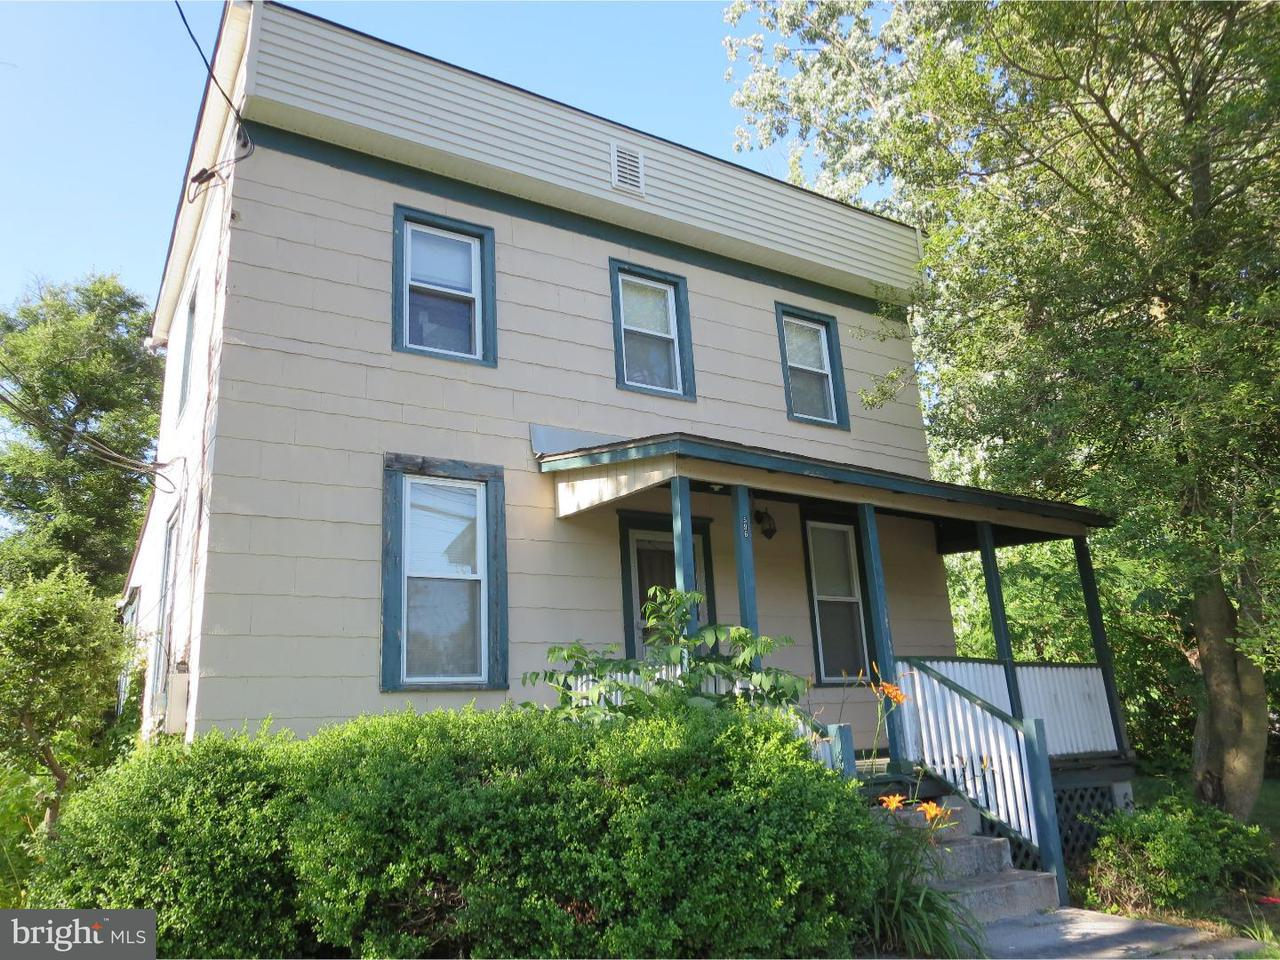 Single Family Home for Sale at 596 SHERMAN Avenue Rosenhayn, New Jersey 08352 United States